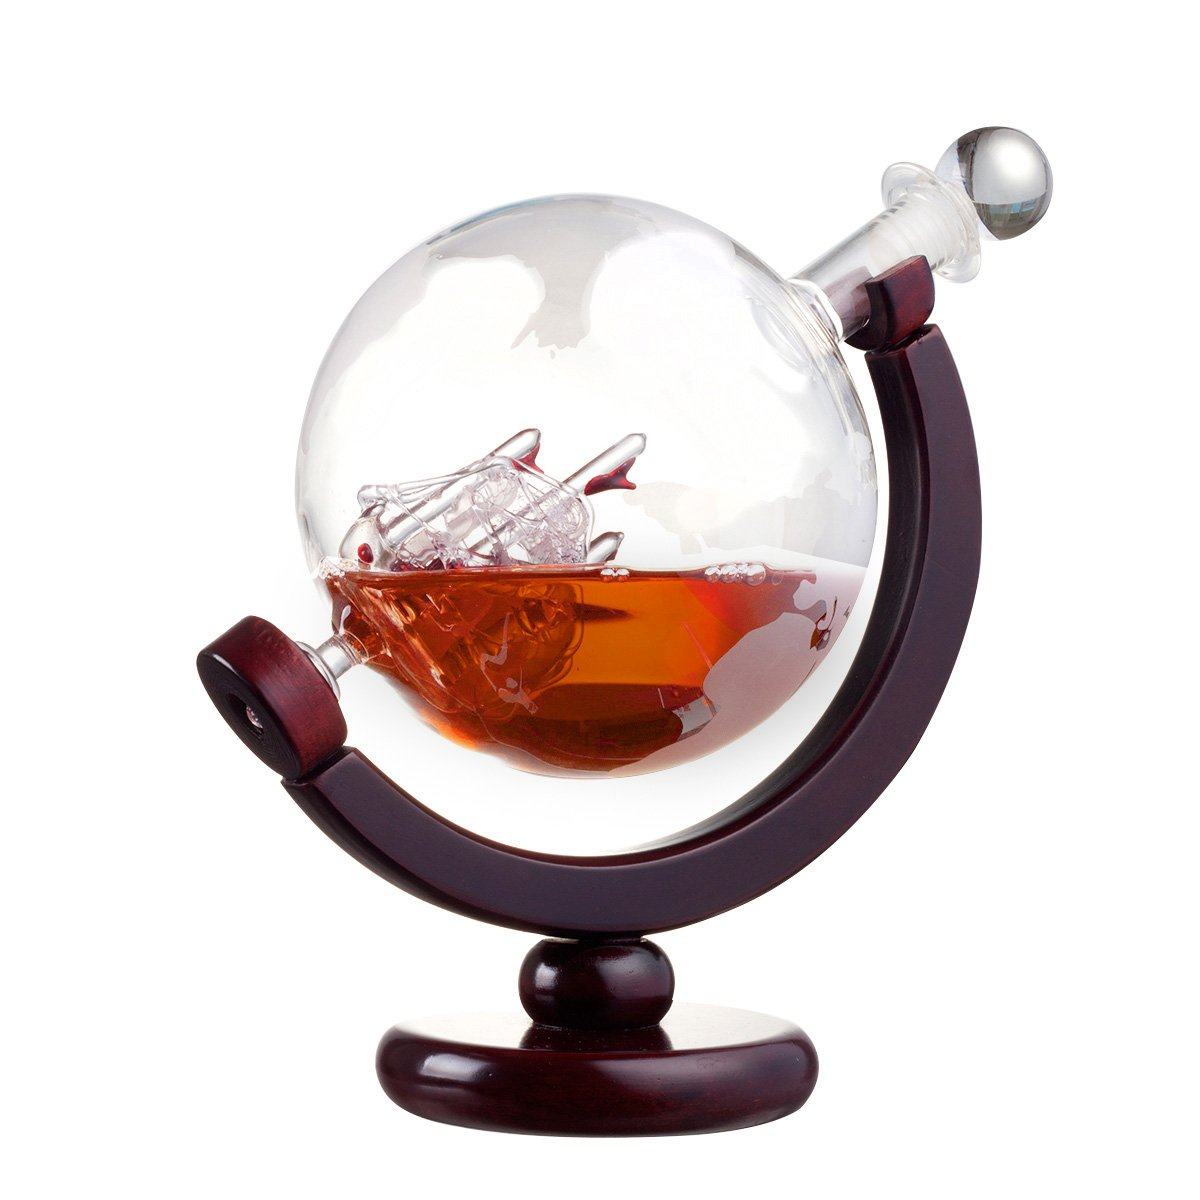 ZARIFINTERNATIONAL 850ml Global Wine Whiskey Decanter with Antique Ship inside and Wooden Stand